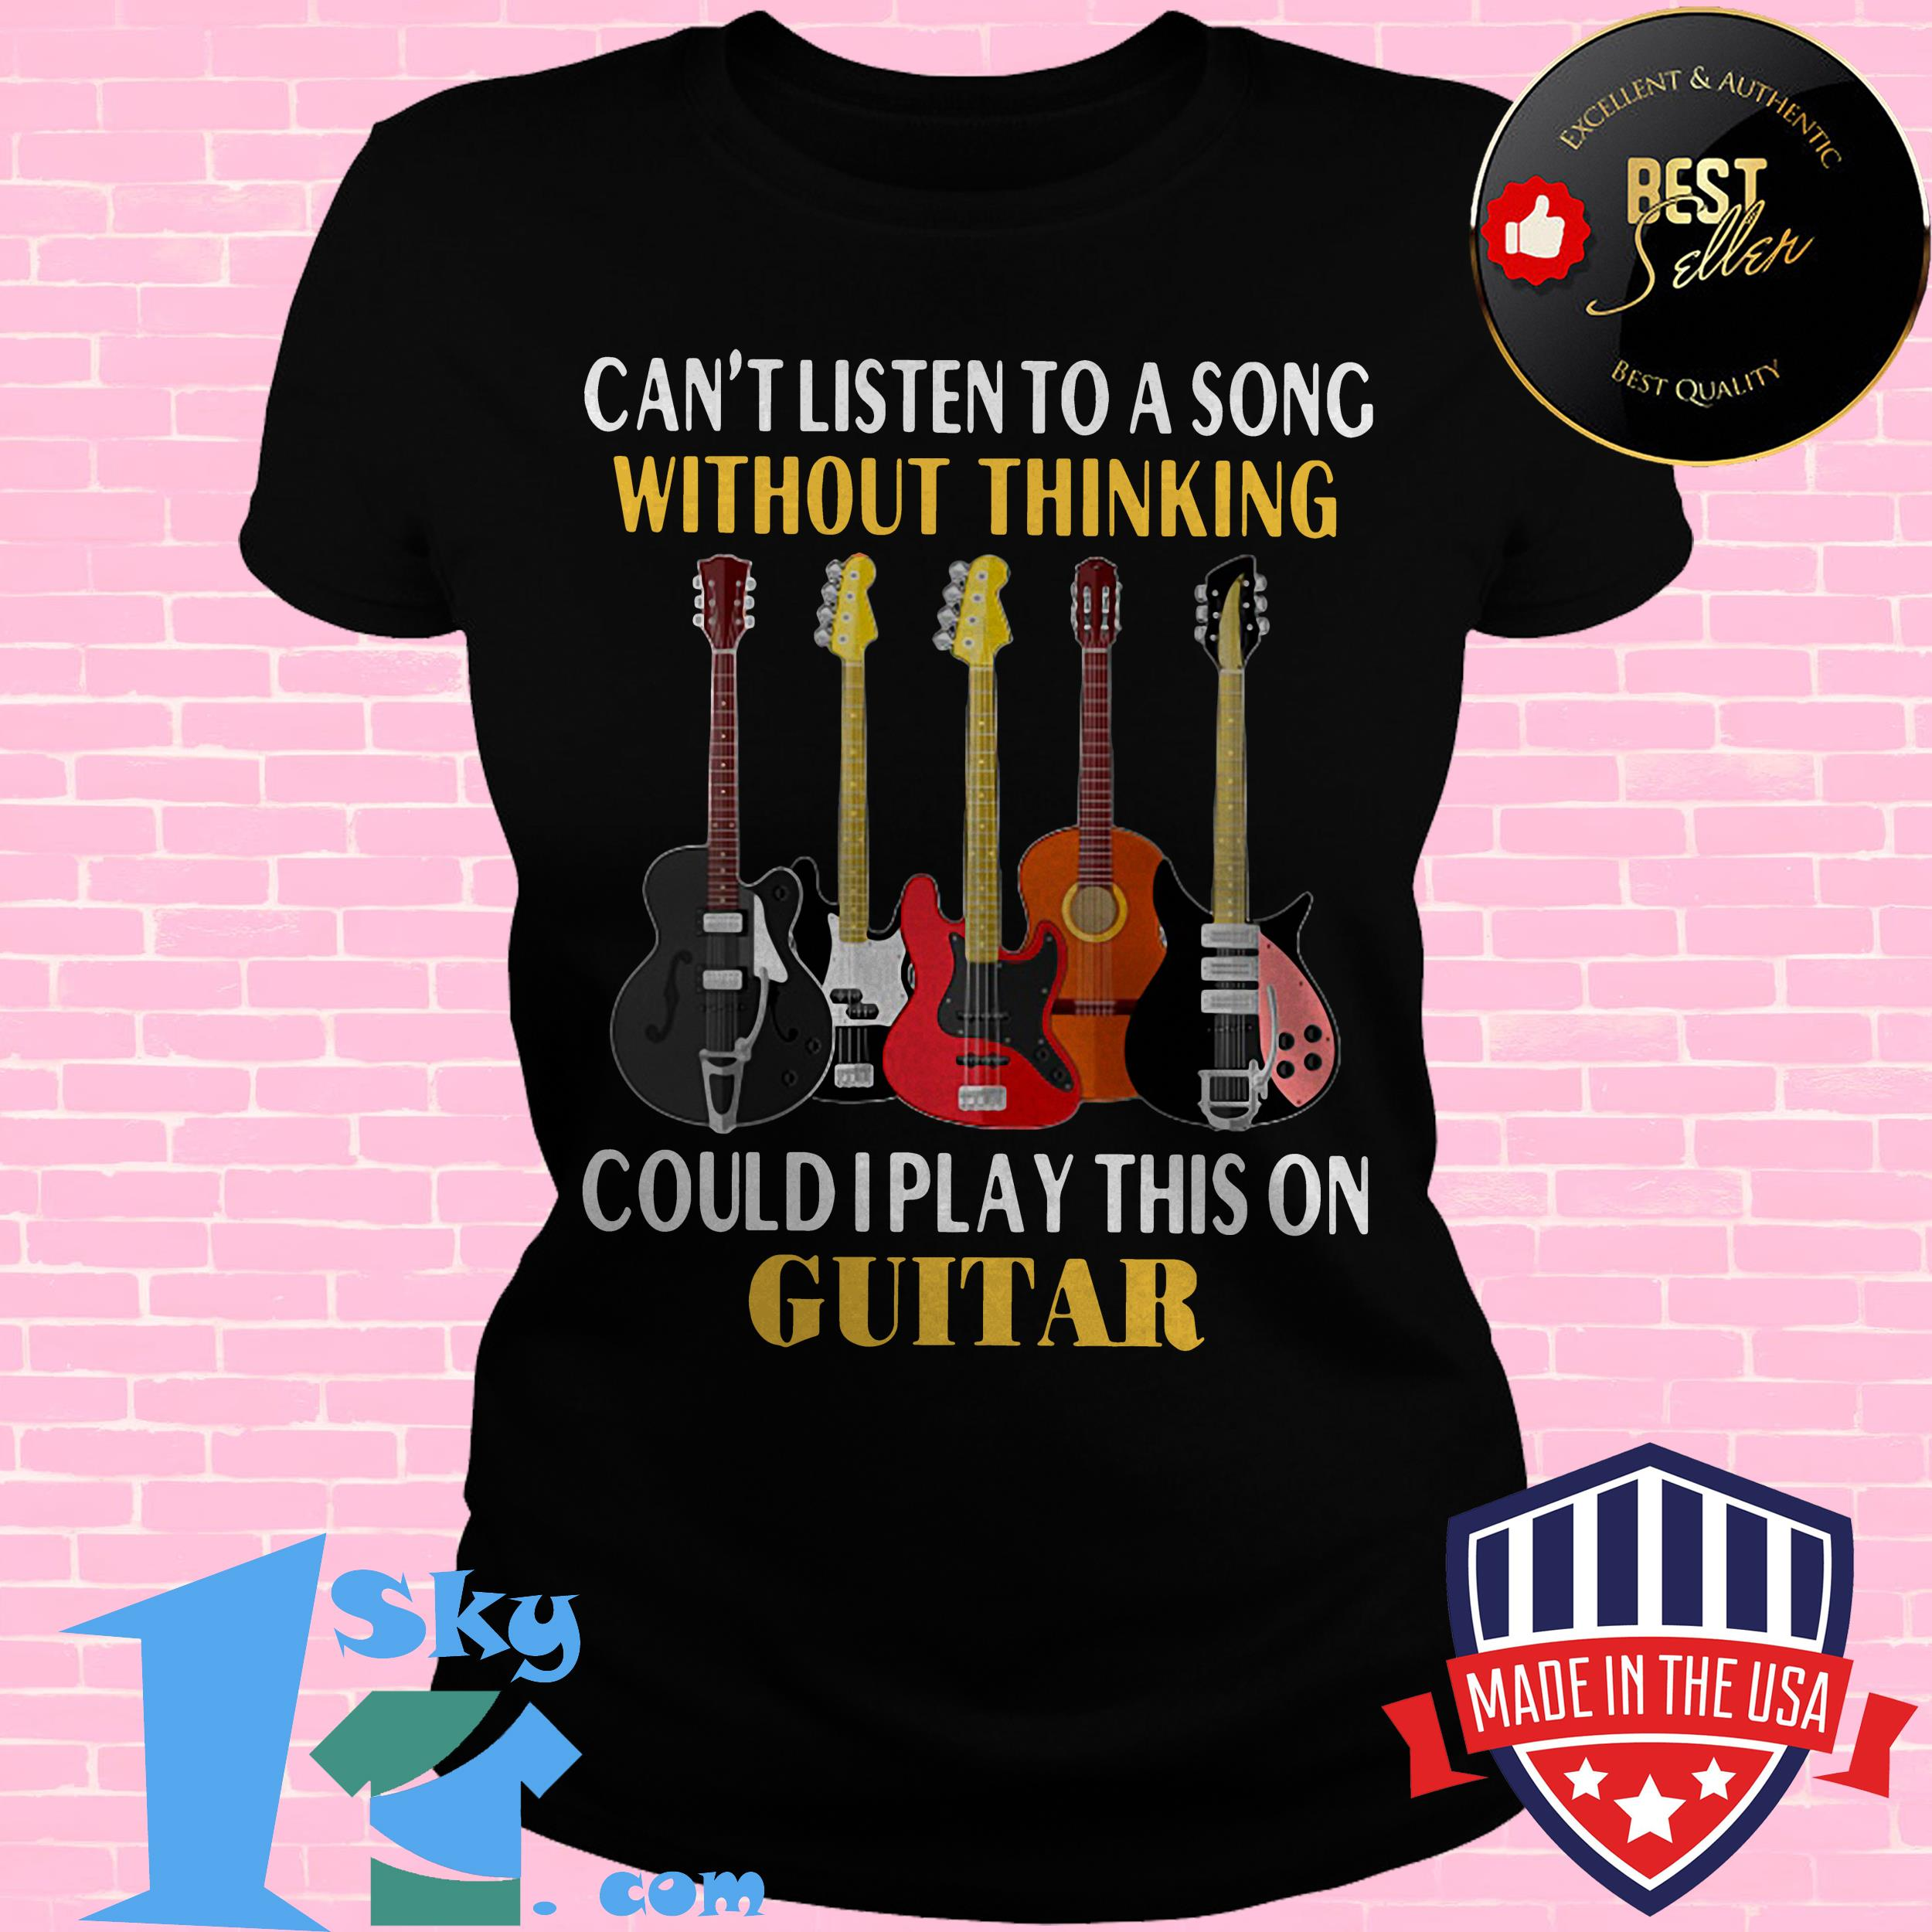 cant listen to a song without thinking could i play this on guitar ladies tee - Can't Listen To A Song Without Thinking Could I Play This On Guitar shirt